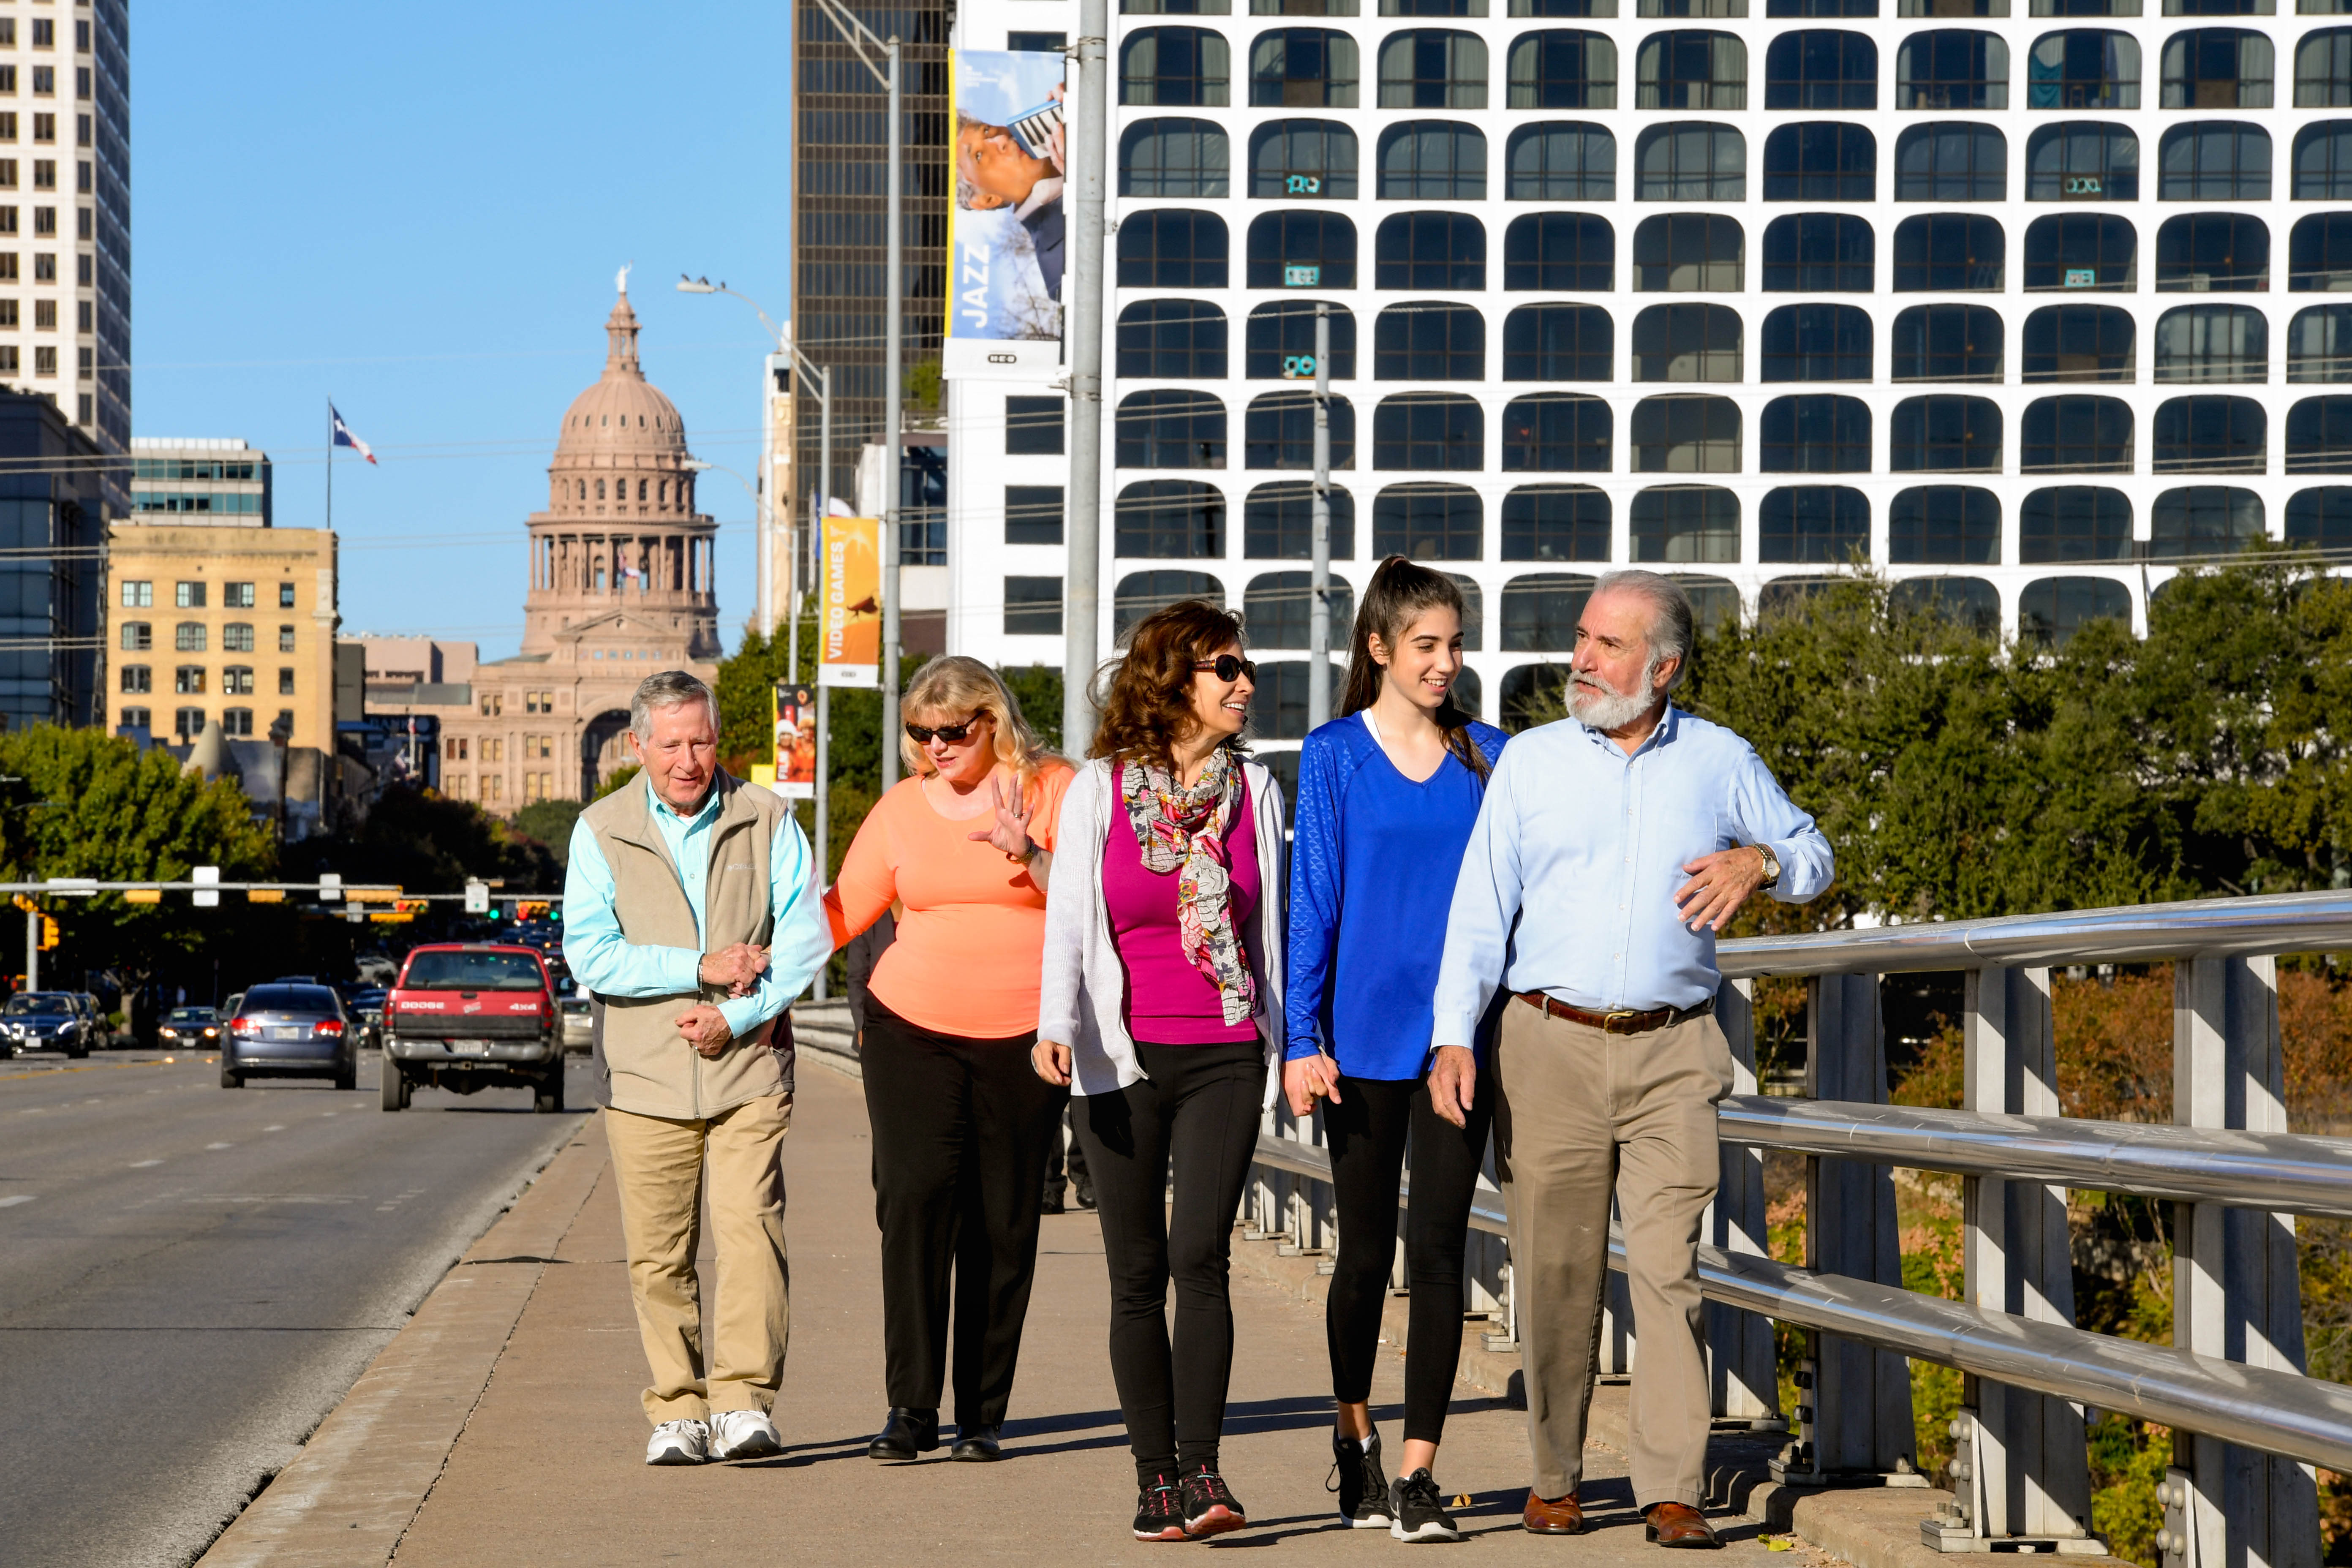 Austin local imagery